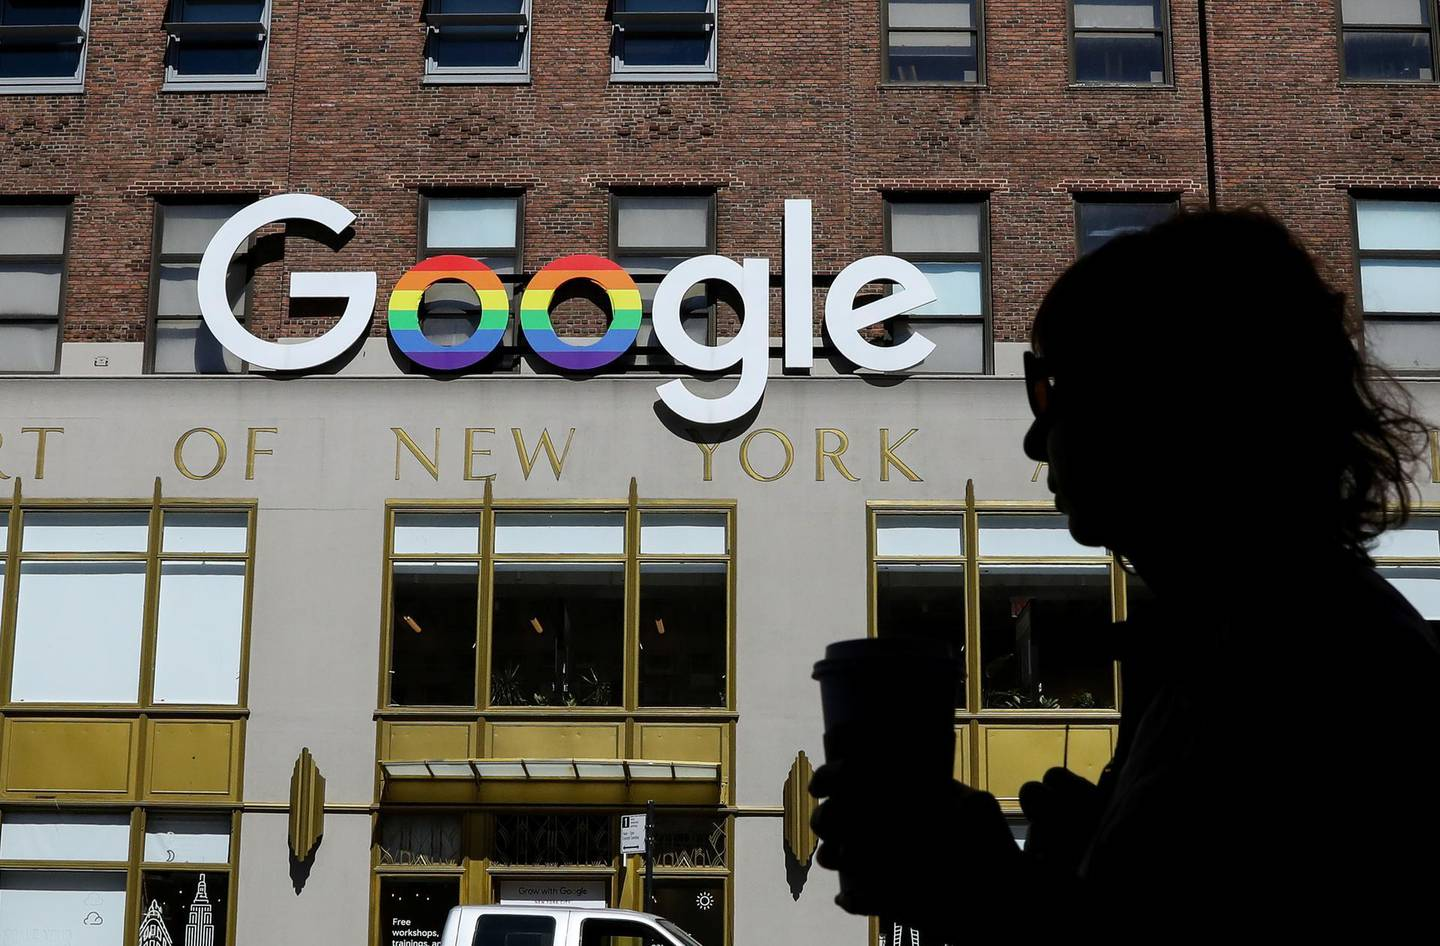 People pass by an entrance to Google offices in New York, U.S., June 4, 2019. REUTERS/Brendan McDermid